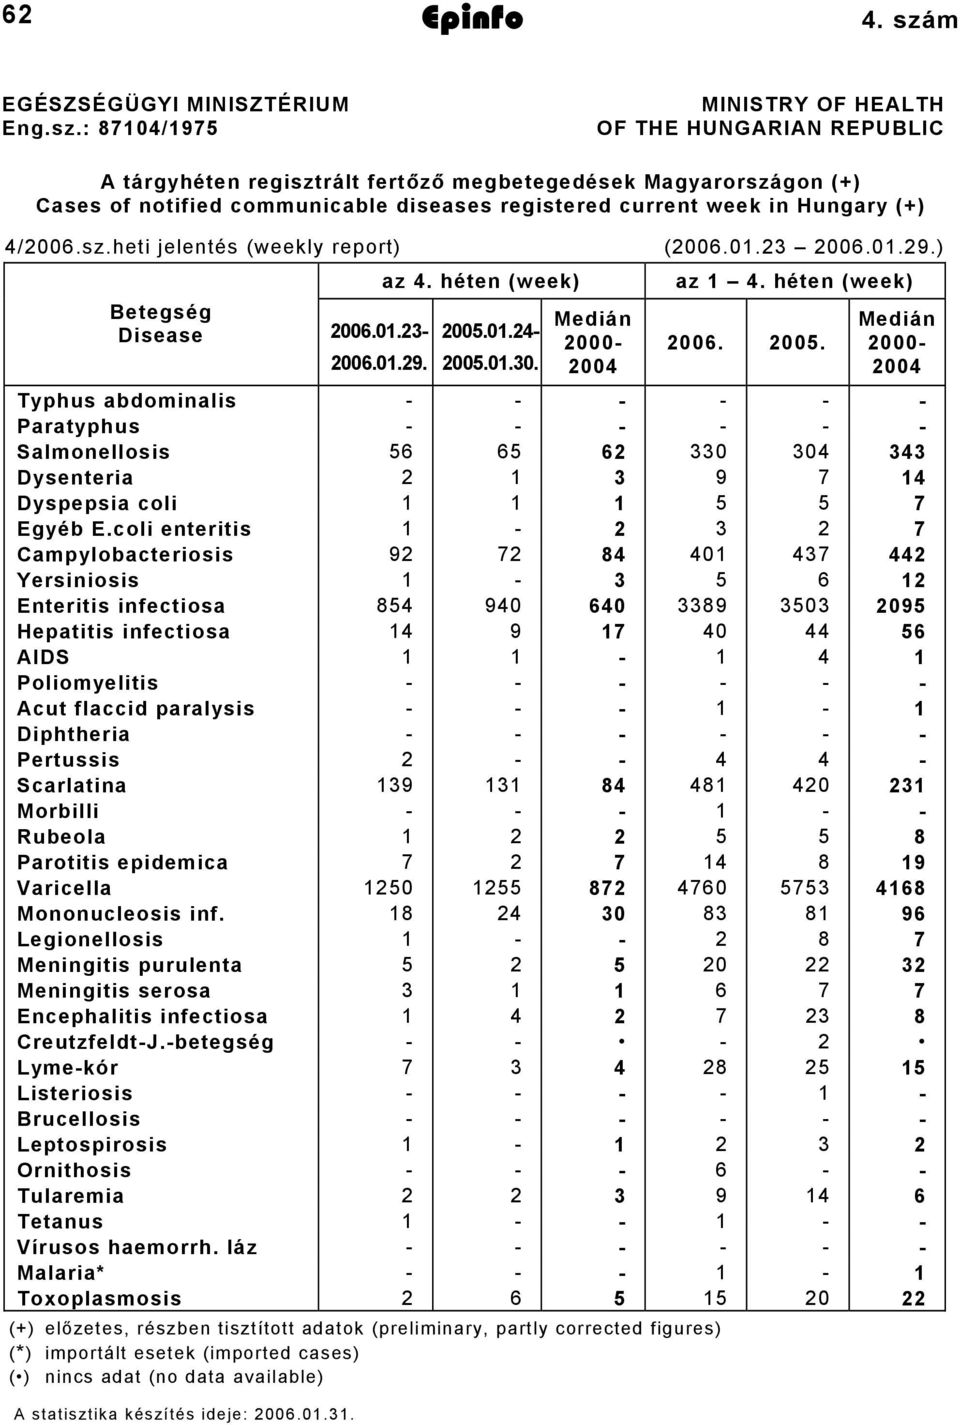 : 87104/1975 MINISTRY OF HEALTH OF THE HUNGARIAN REPUBLIC A tárgyhéten regisztrált fertőző megbetegedések Magyarországon (+) Cases of notified communicable diseases registered current week in Hungary